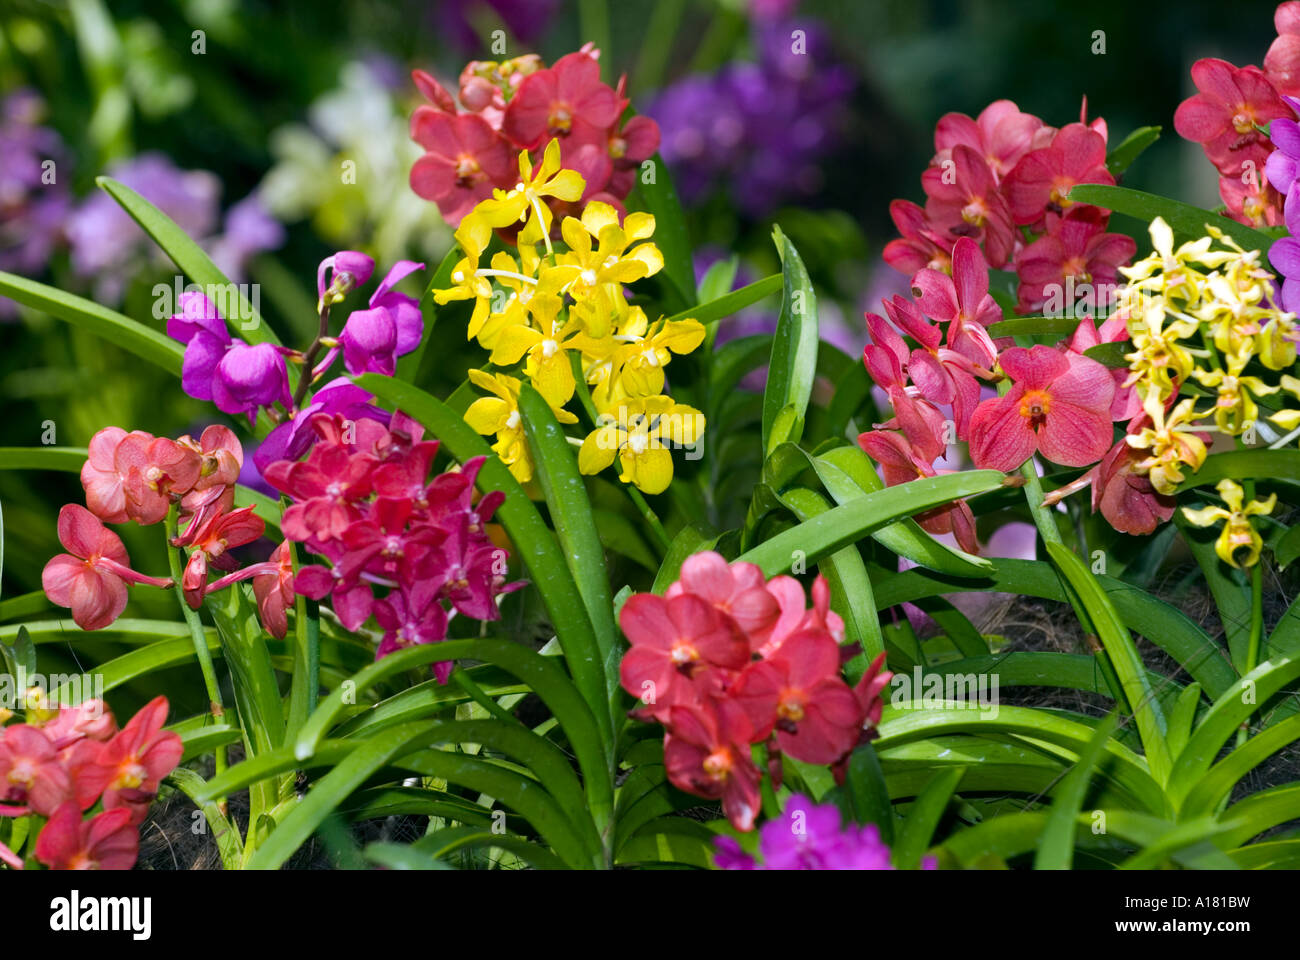 Mixed ORCHIDS Plants Cattleya Orchid Orchidgarden Orchid Garden Red Pink  Yellow Green Blue